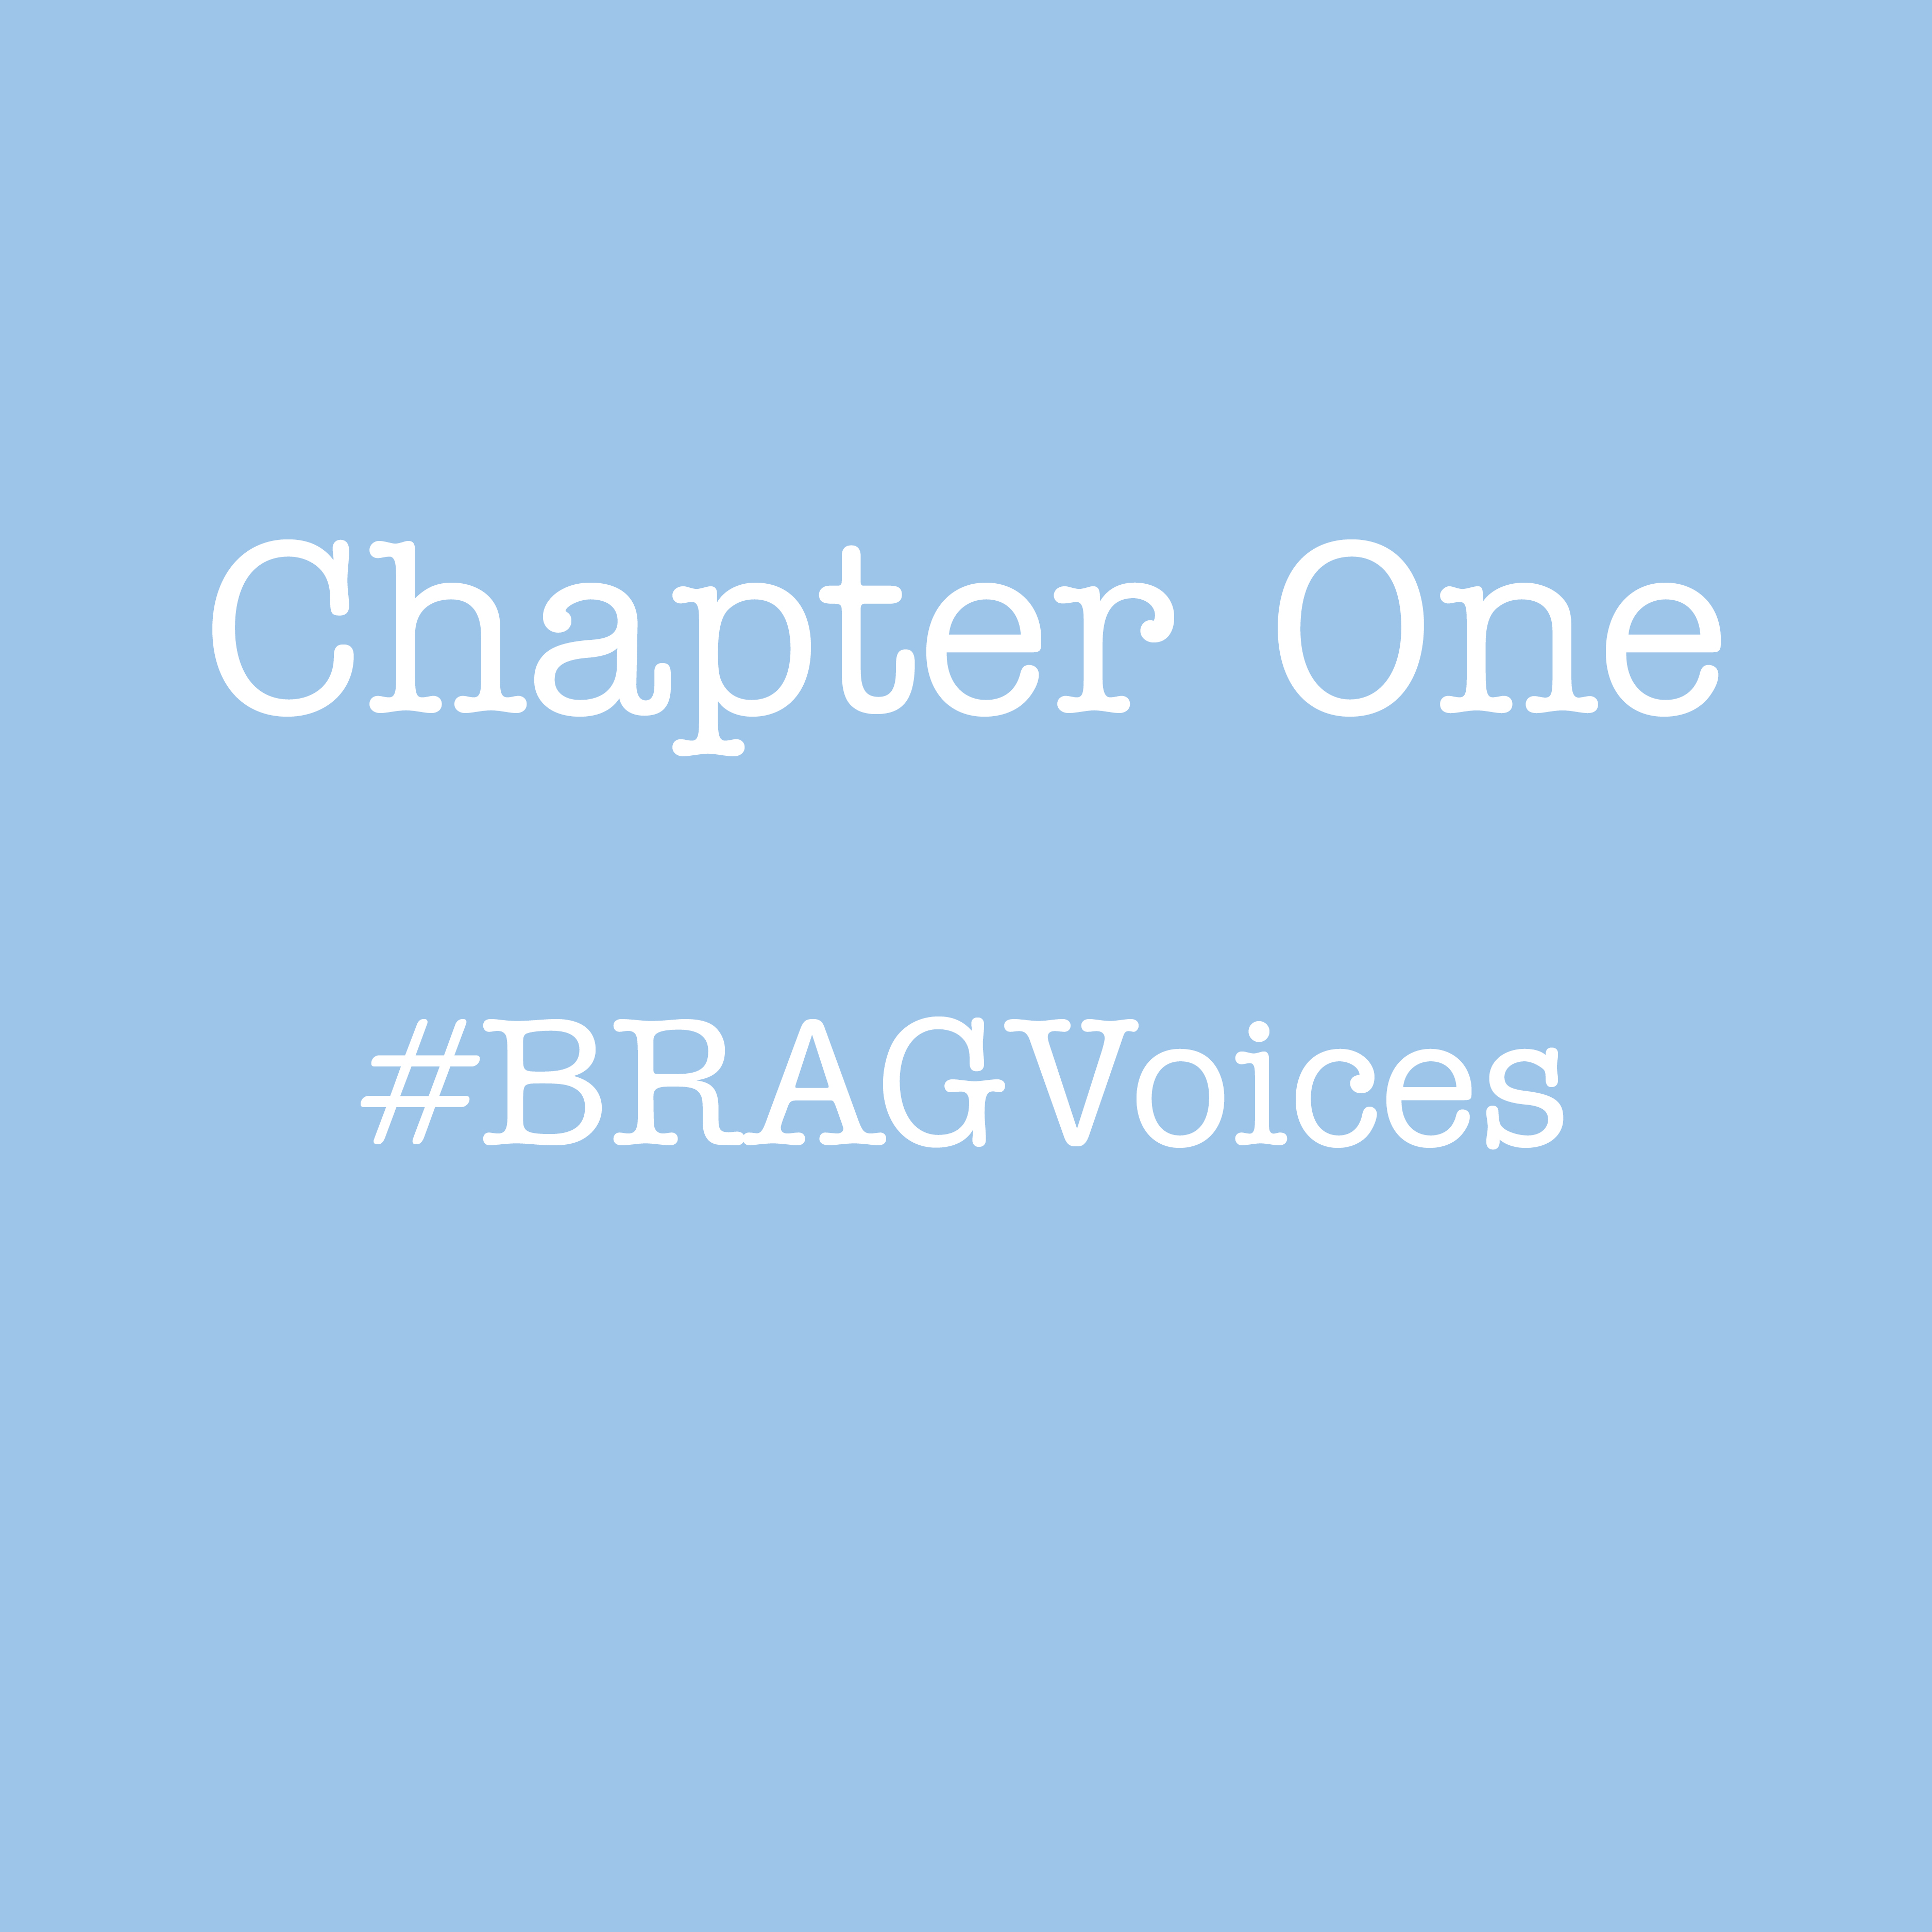 Chapter One: BRAG Voices